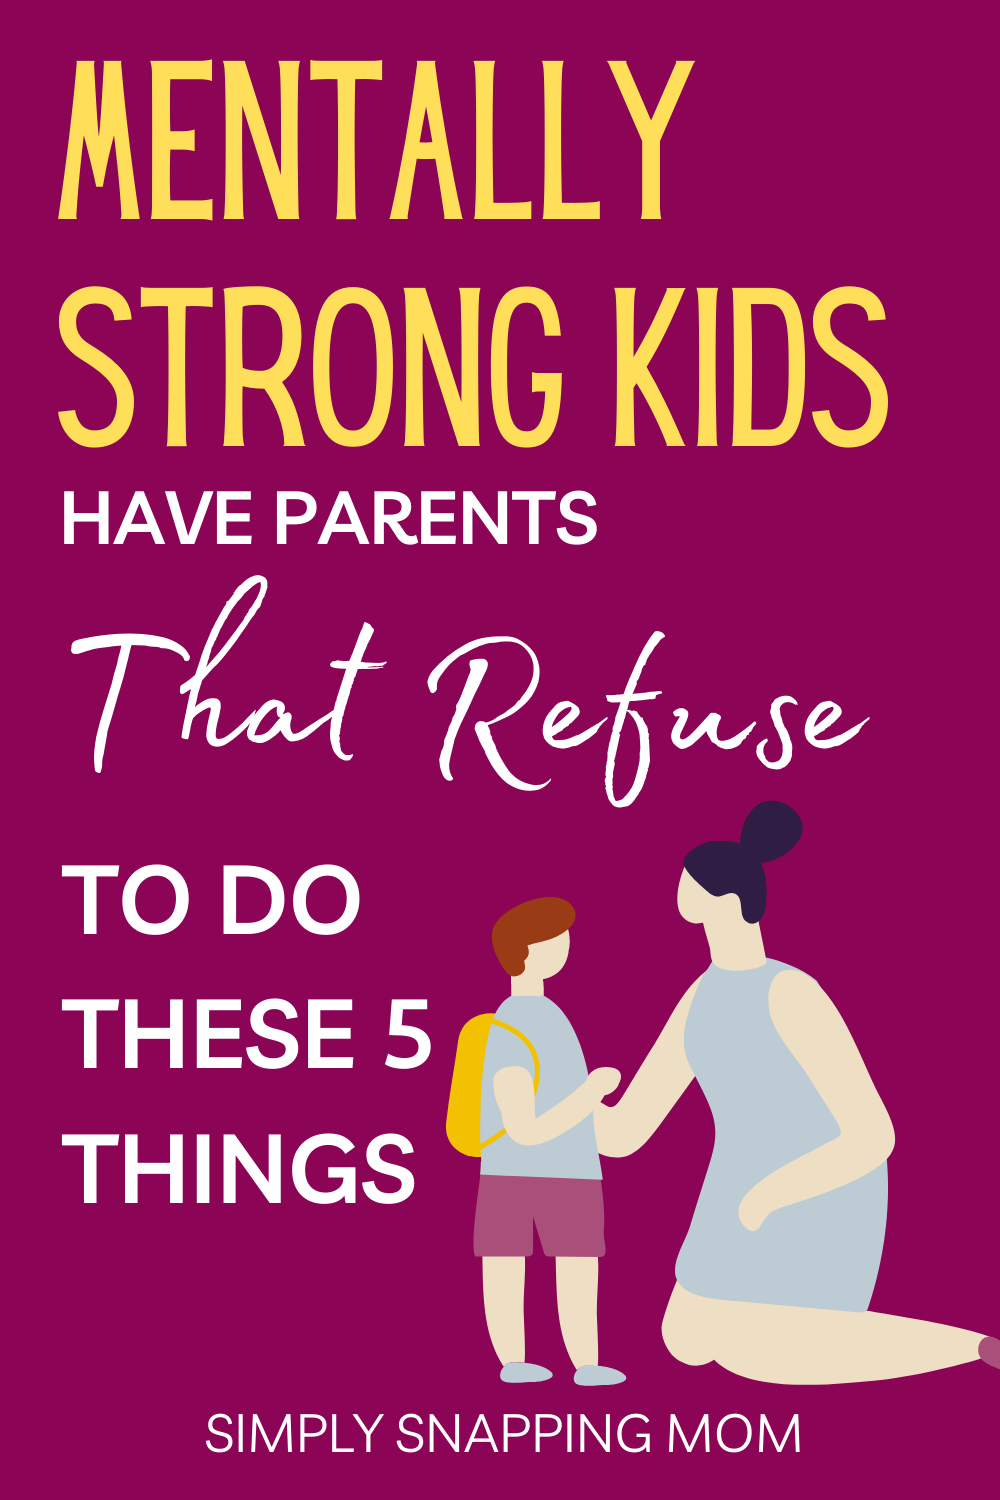 Parenting Advice on Raising Mentally Strong Kids